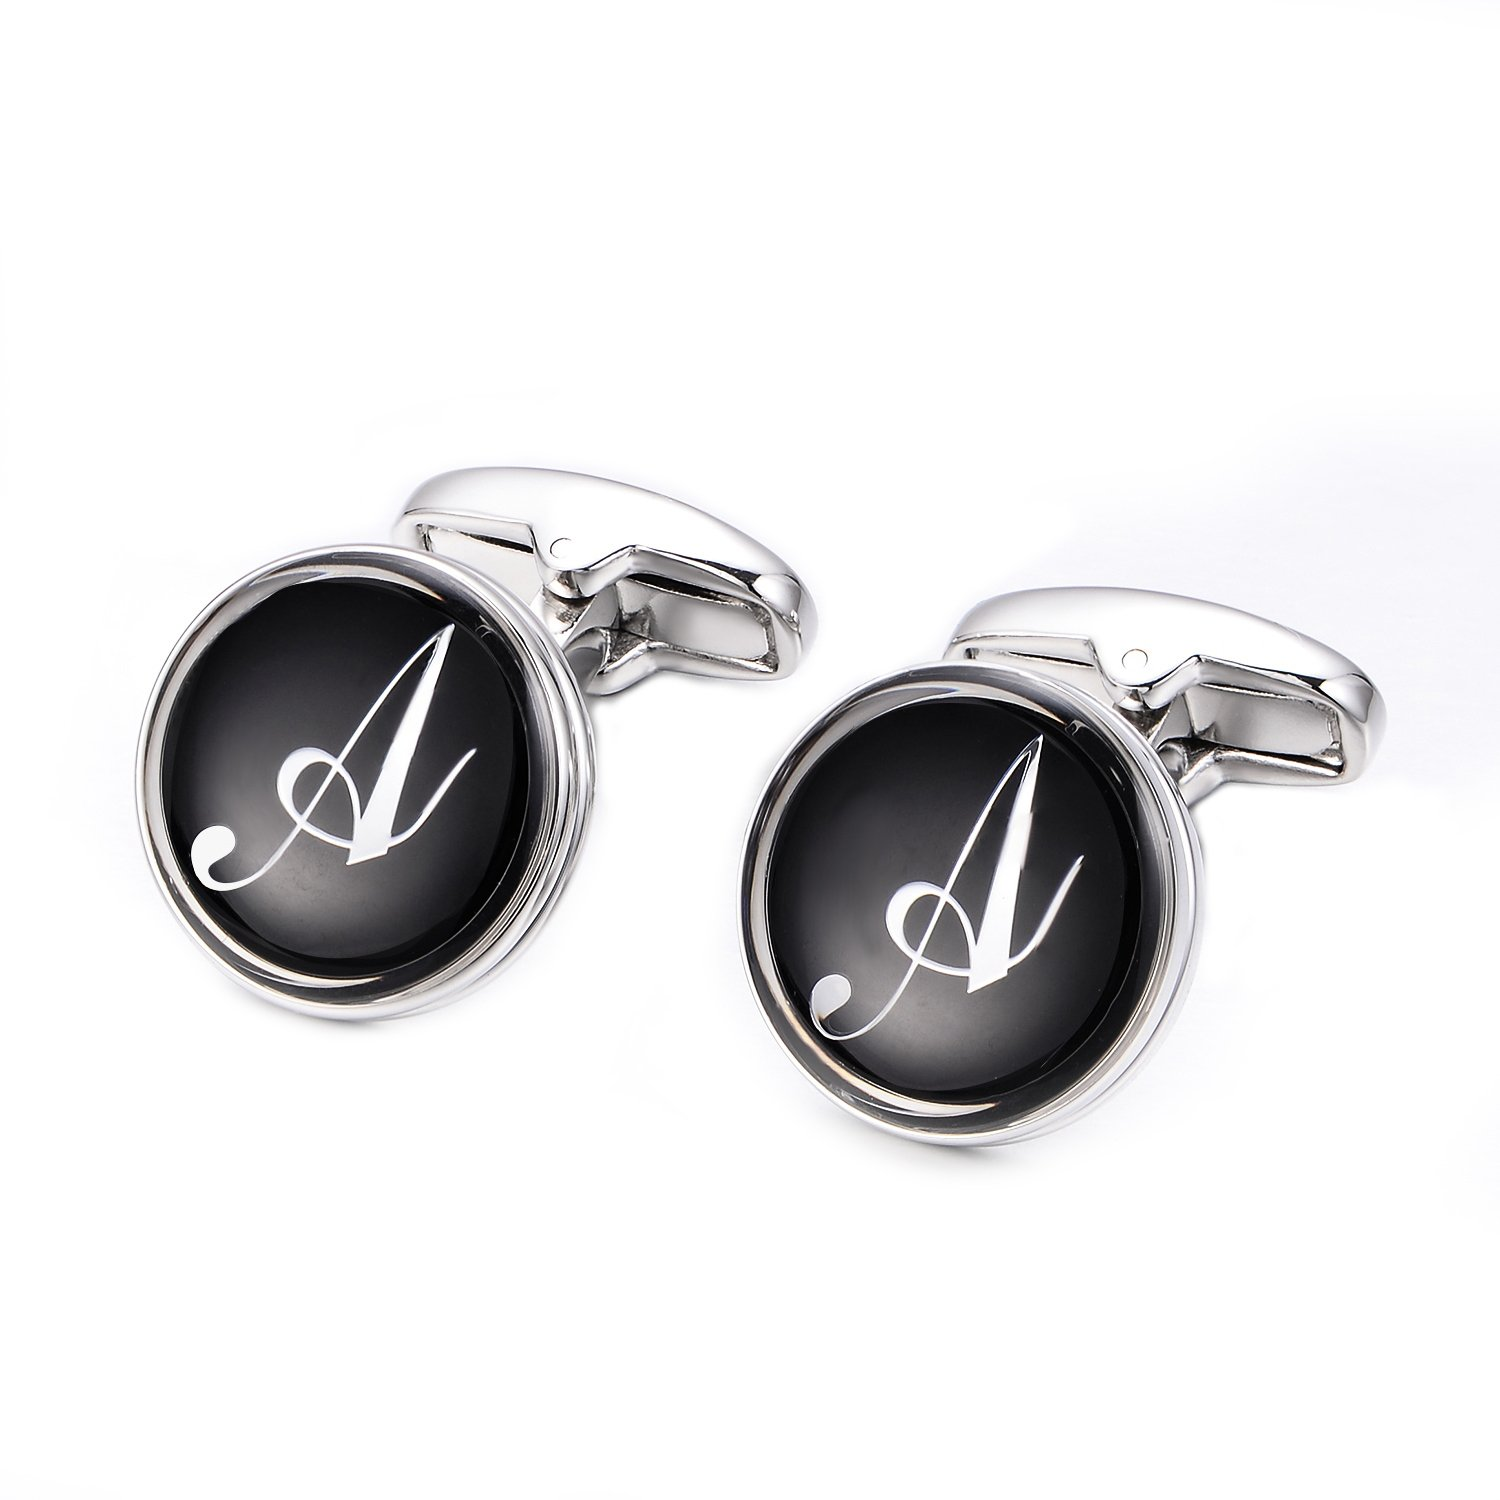 One of the nicest engraved fathers day gifts is without doubt cuff links, as there can be expertly engraved with initials on each one, making it clear that you really thought about the gift and the person receiving it.